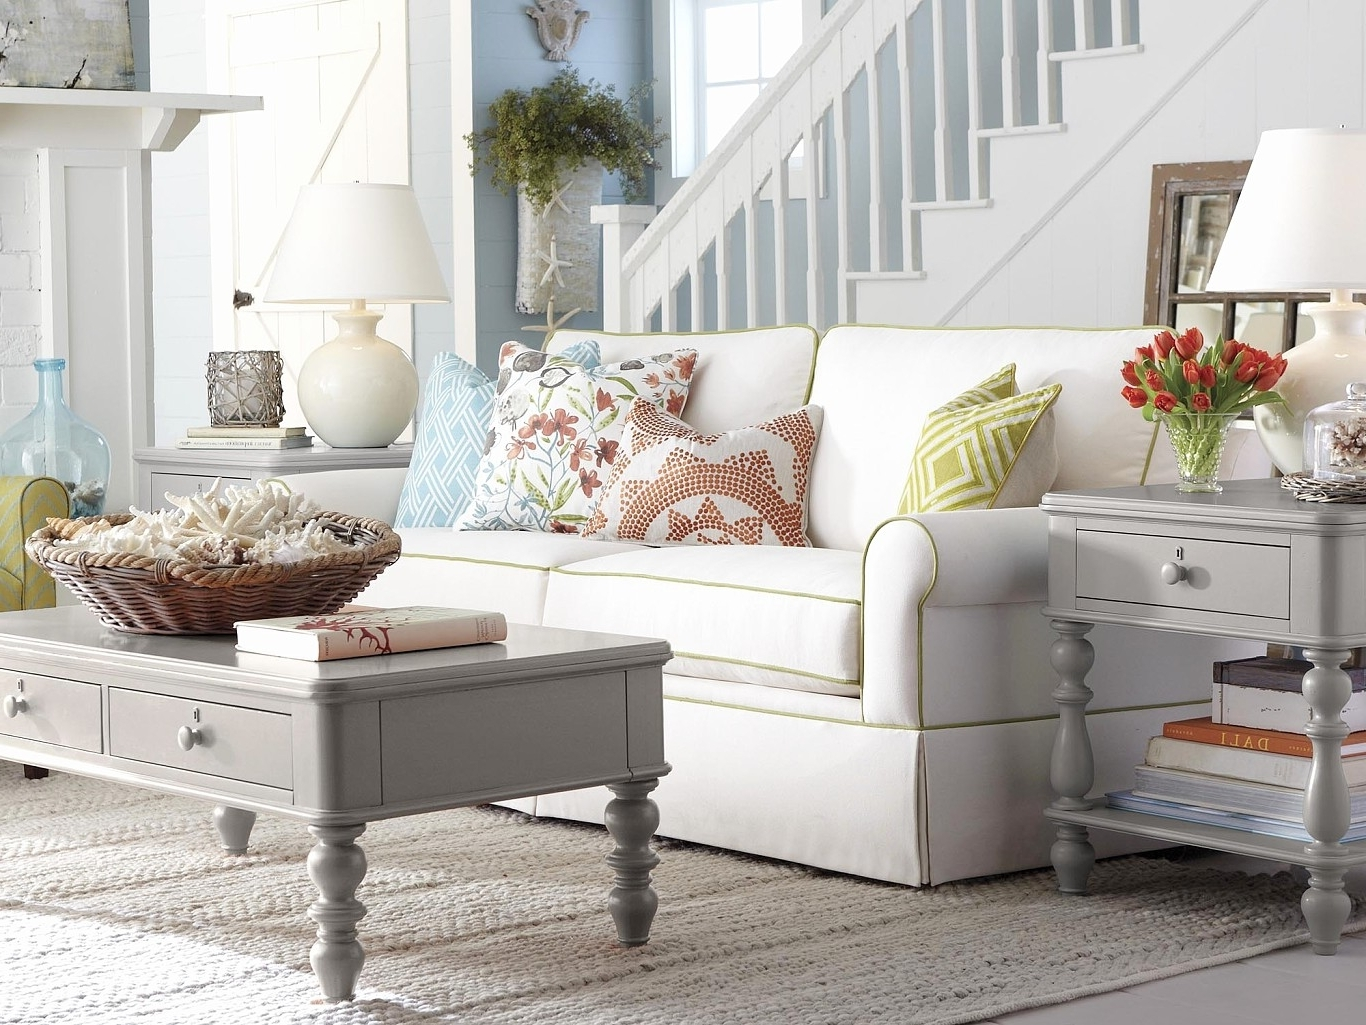 Large Sofa Chairs Throughout Fashionable Bassett Accent Chair Bassett Furniture Gift Card Large Sofa Chair (View 10 of 20)